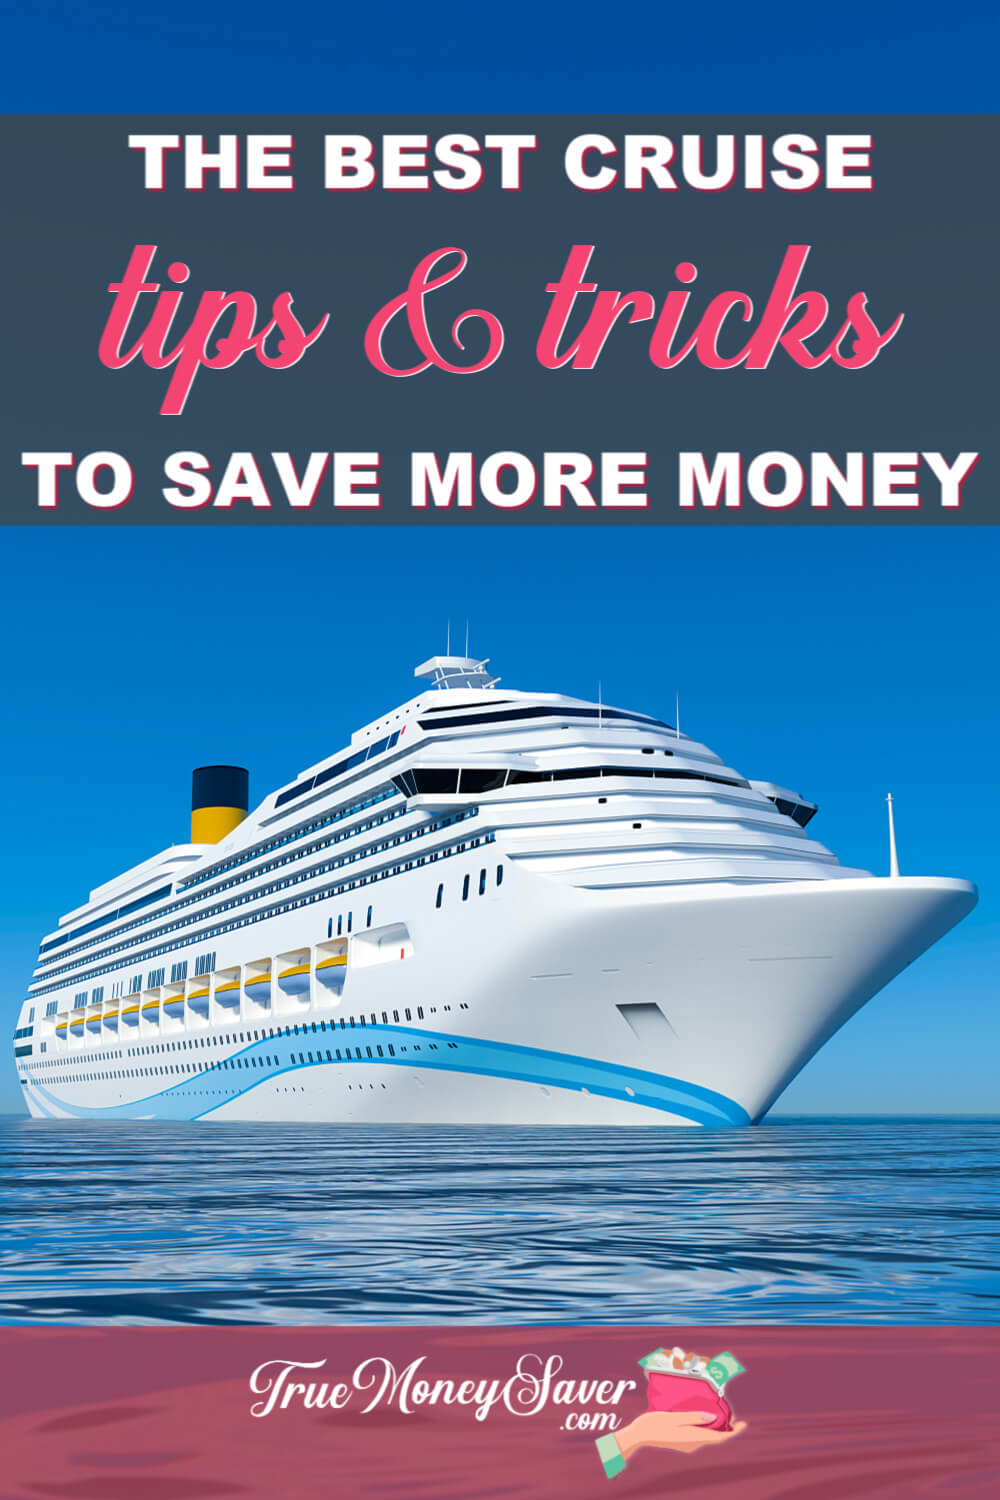 The Best Cruise Tips & Tricks To Save More Money